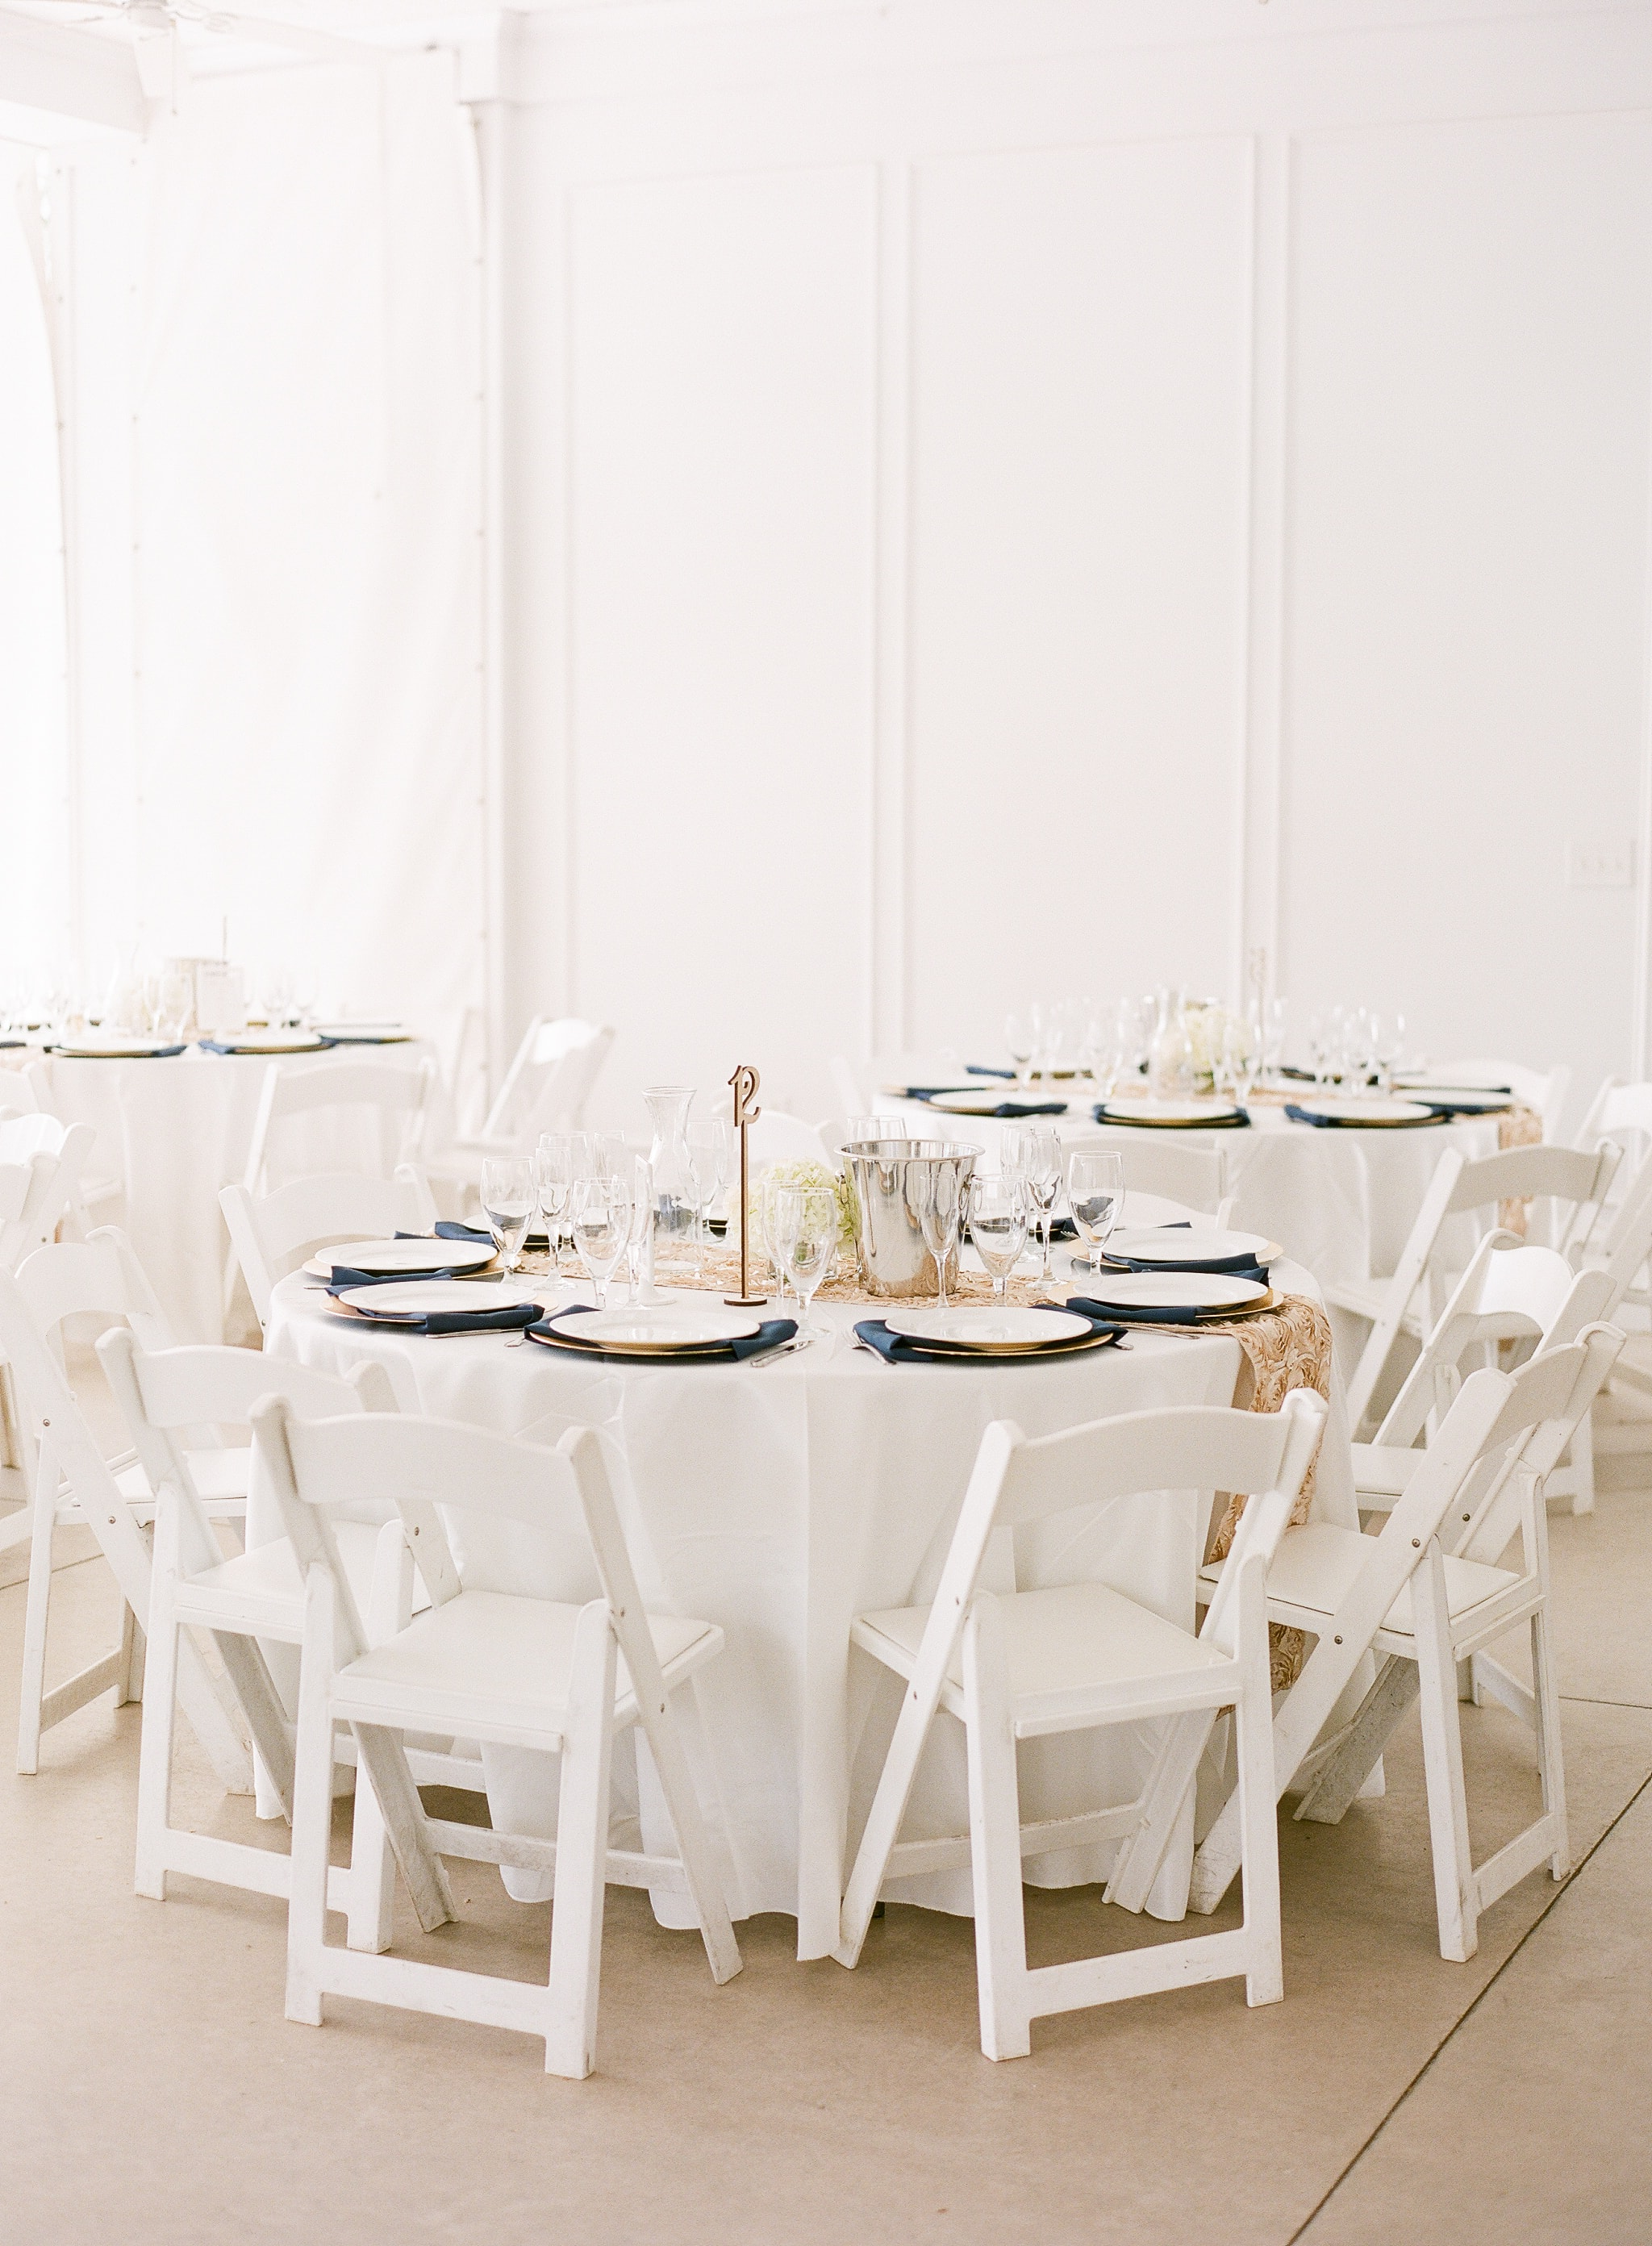 Reception tables set with white linens and accented with navy napkins for a wedding reception at Vesuvius Vineyards coordinated by Magnificent Moments Weddings